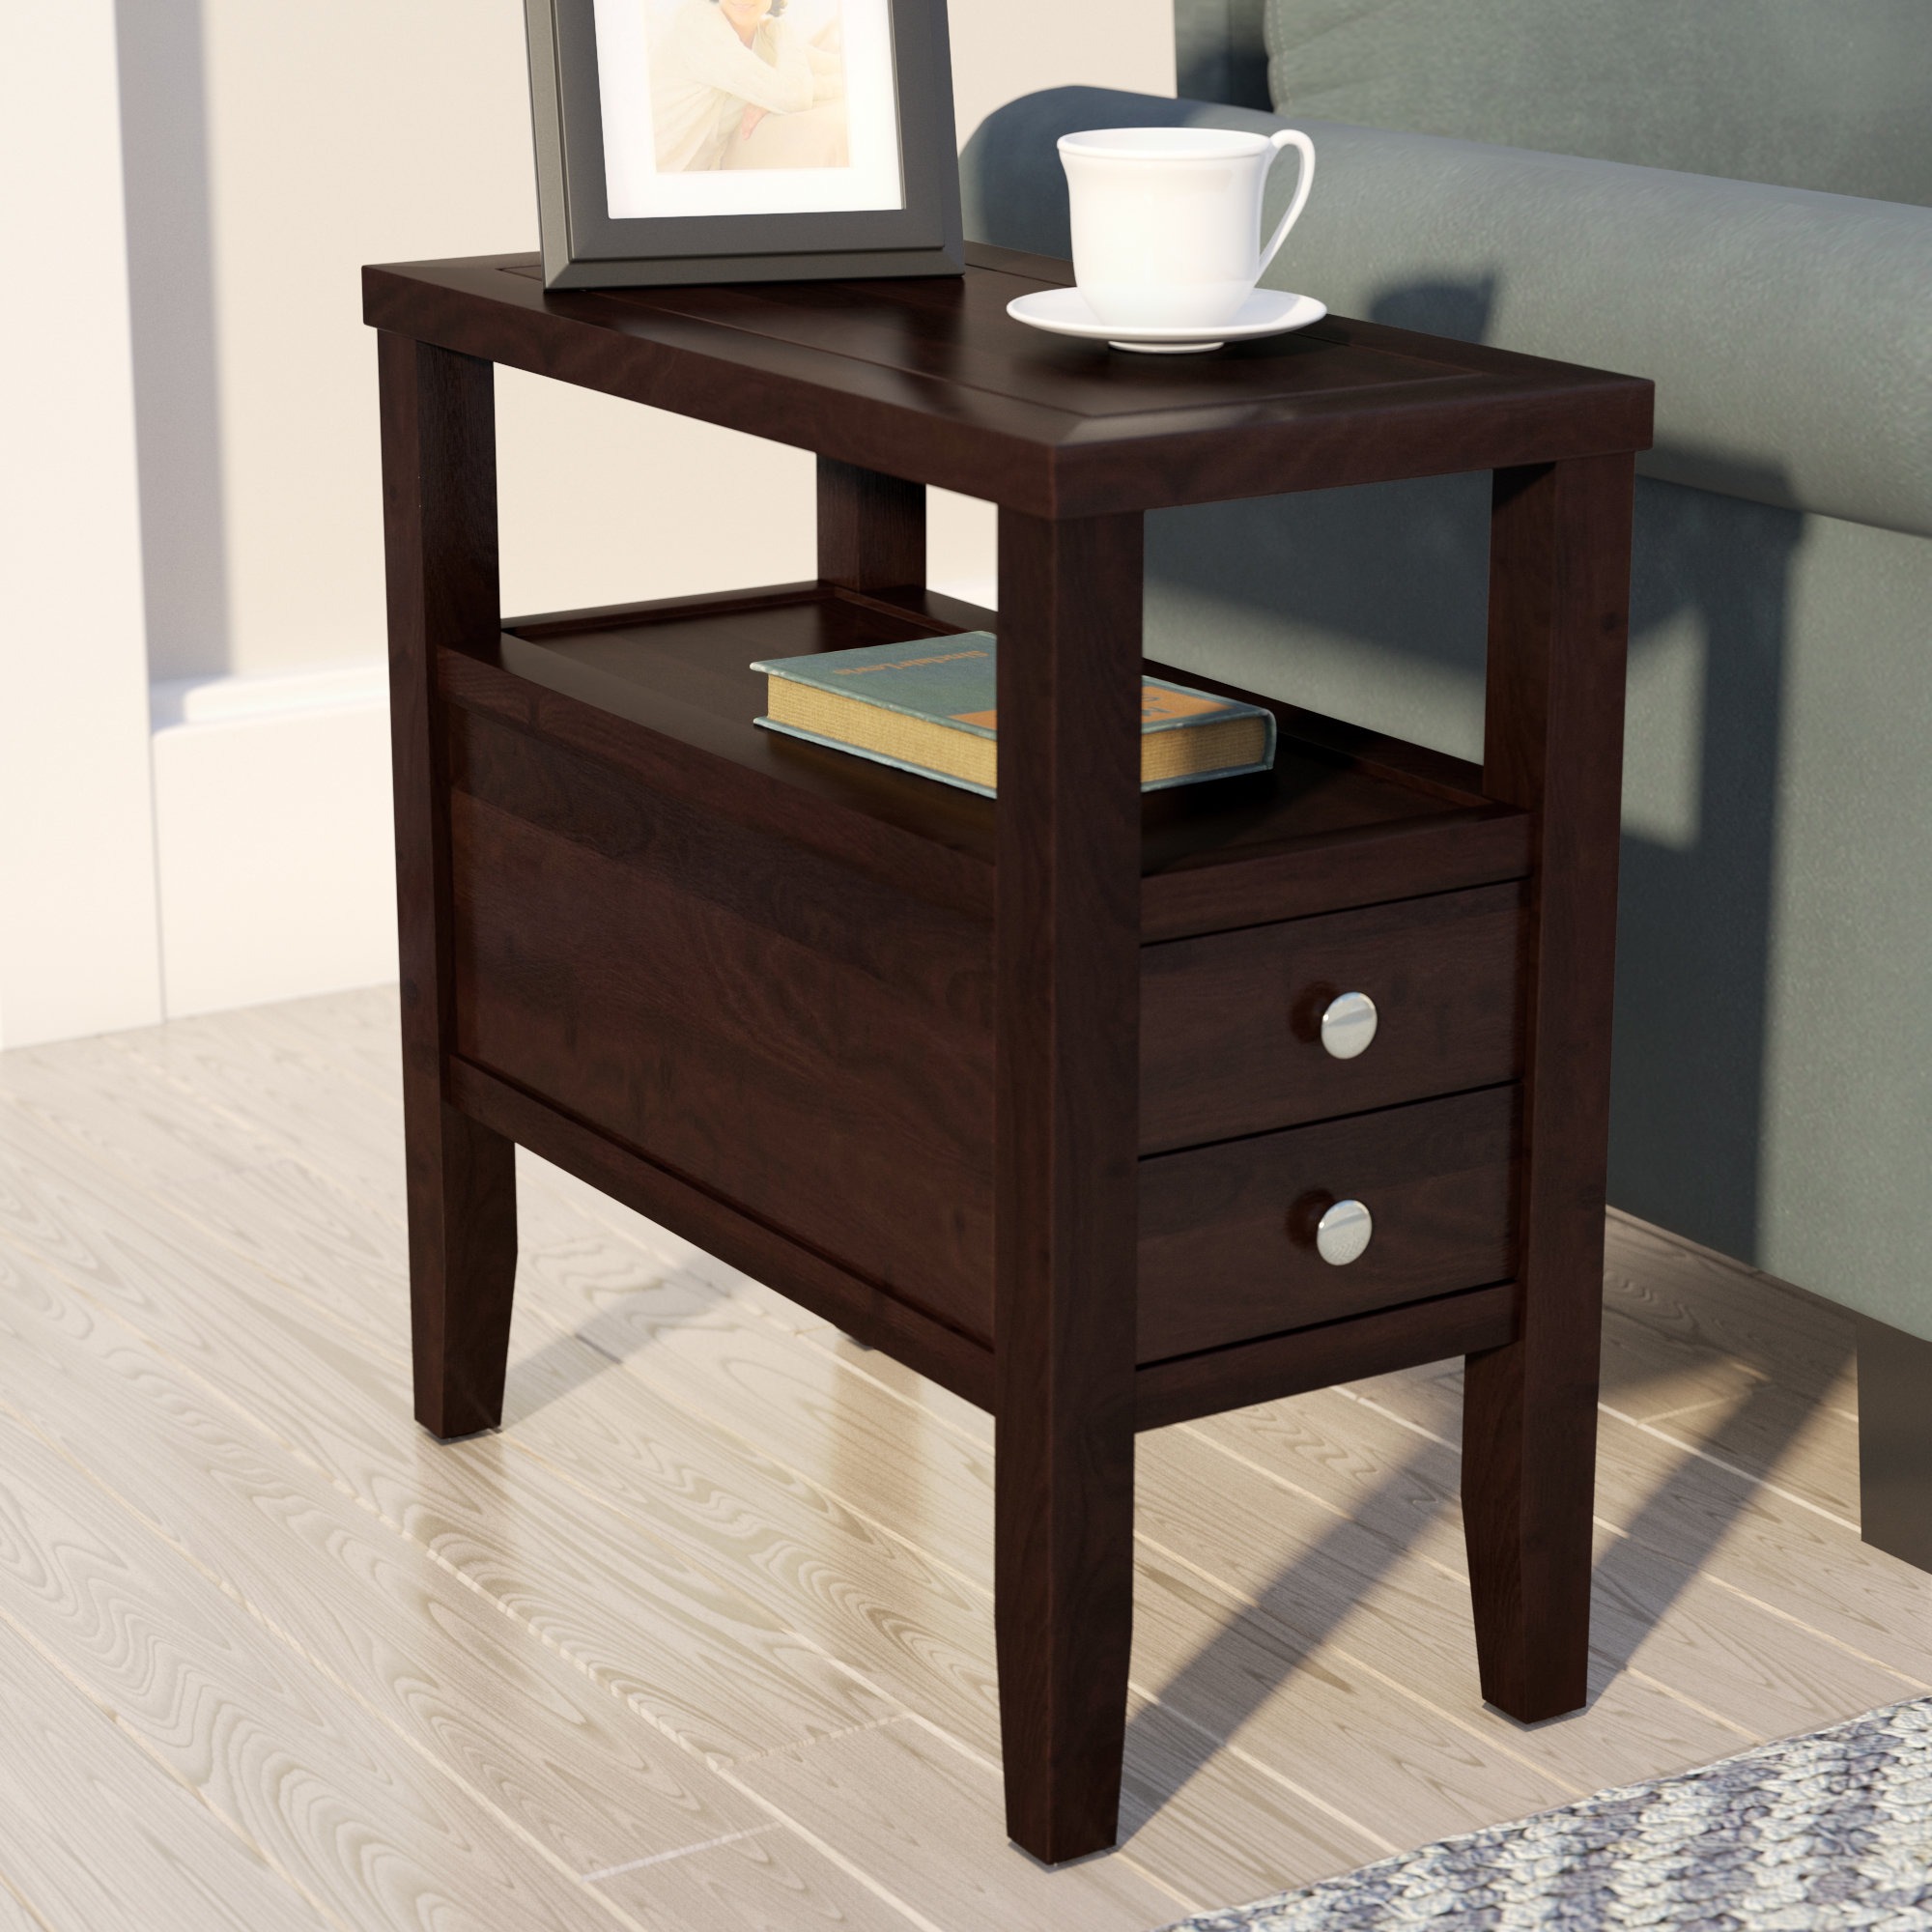 andover mills gahagan end table with storage reviews tables furniture solid marble living room paint ideas brown couch bedside drawers ashley queen set pipe stand desk lazy boy